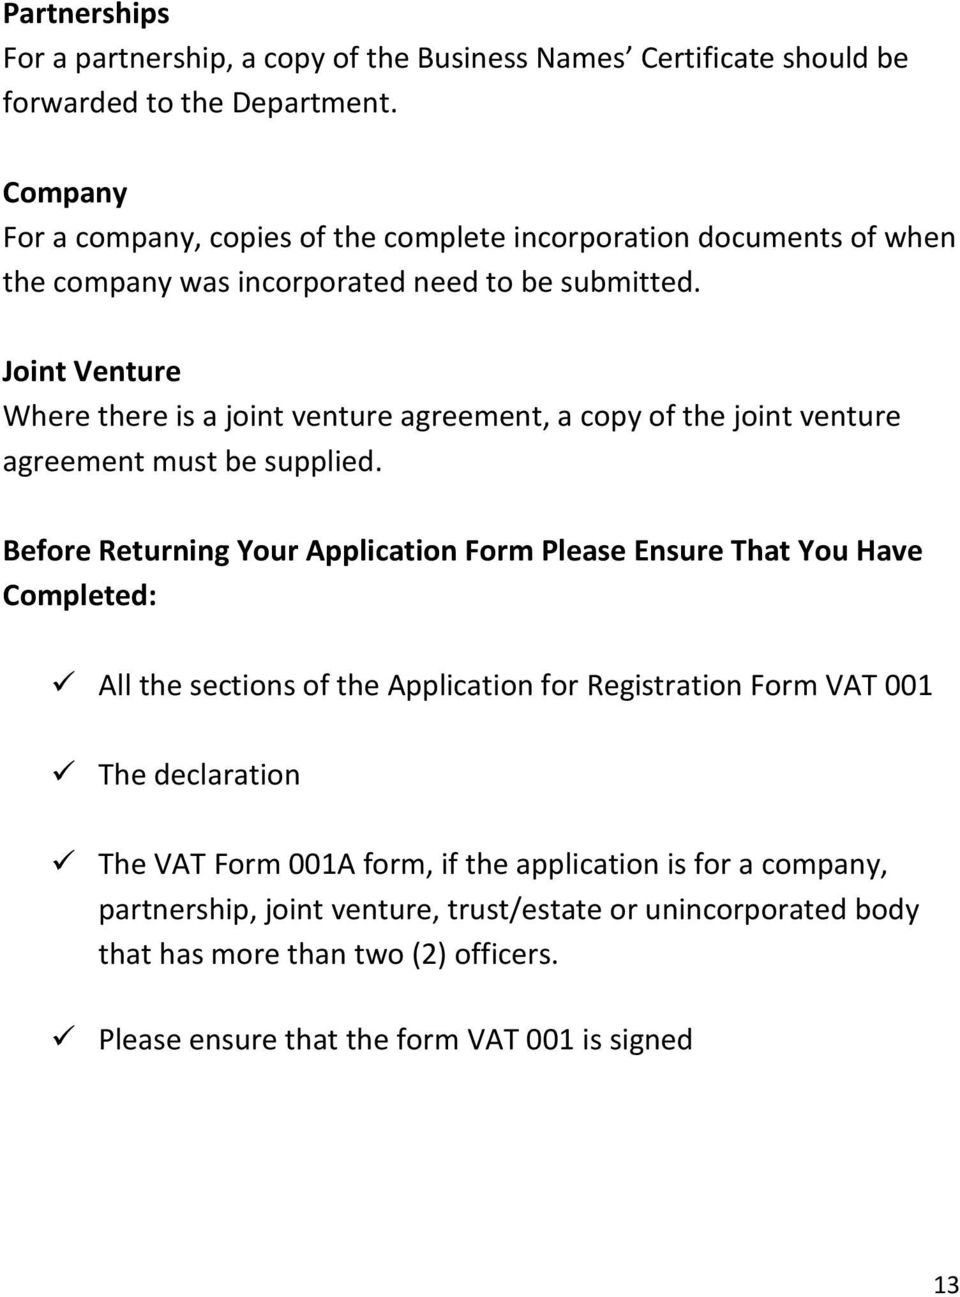 Joint Venture Where there is a joint venture agreement, a copy of the joint venture agreement must be supplied.